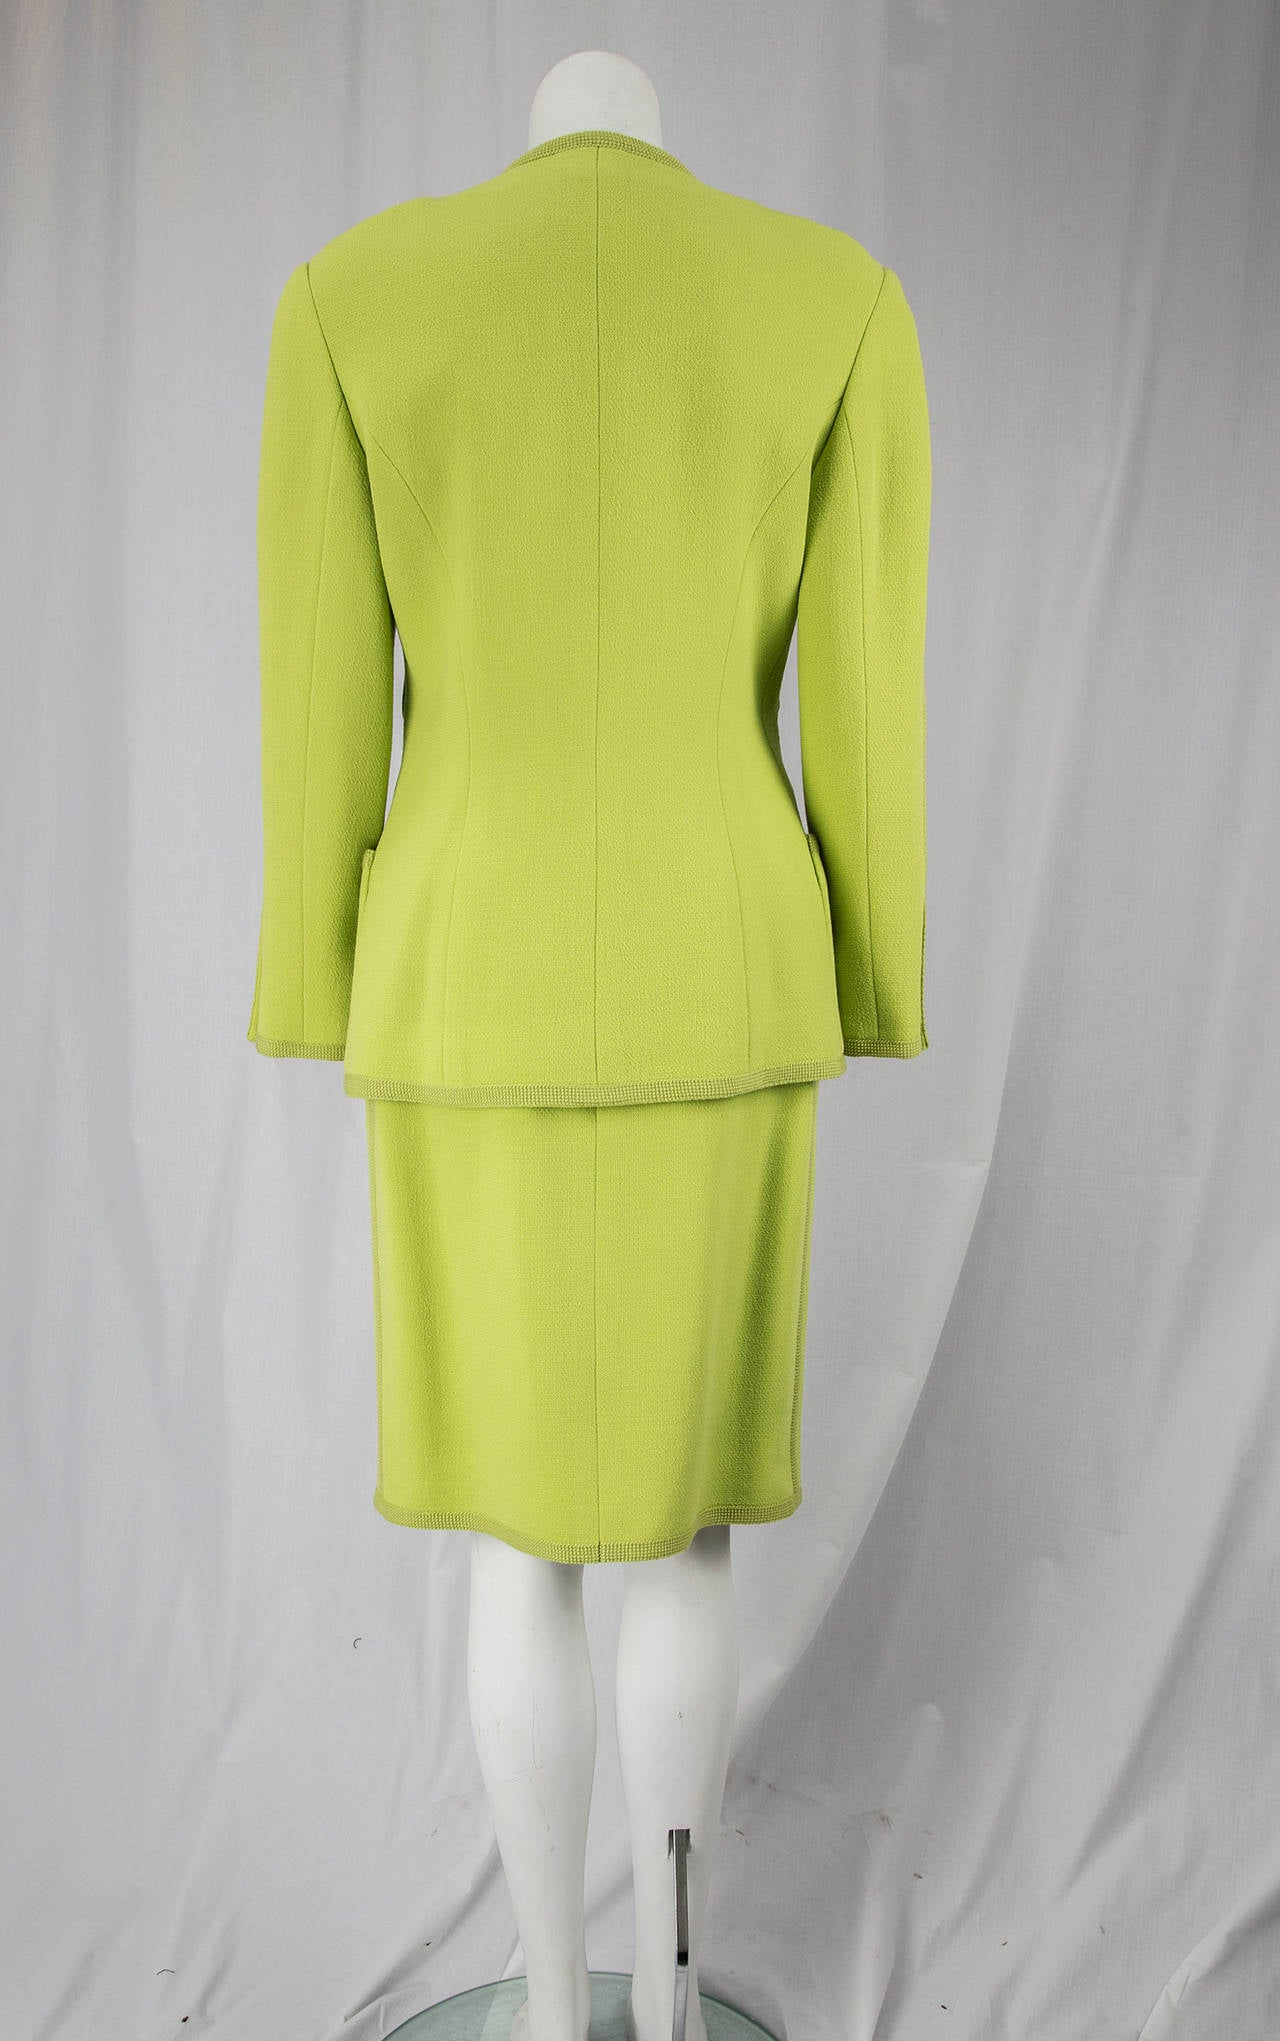 CHANEL BOUTIQUE Chartreuse Green Suit Signature Chanel For Sale 1